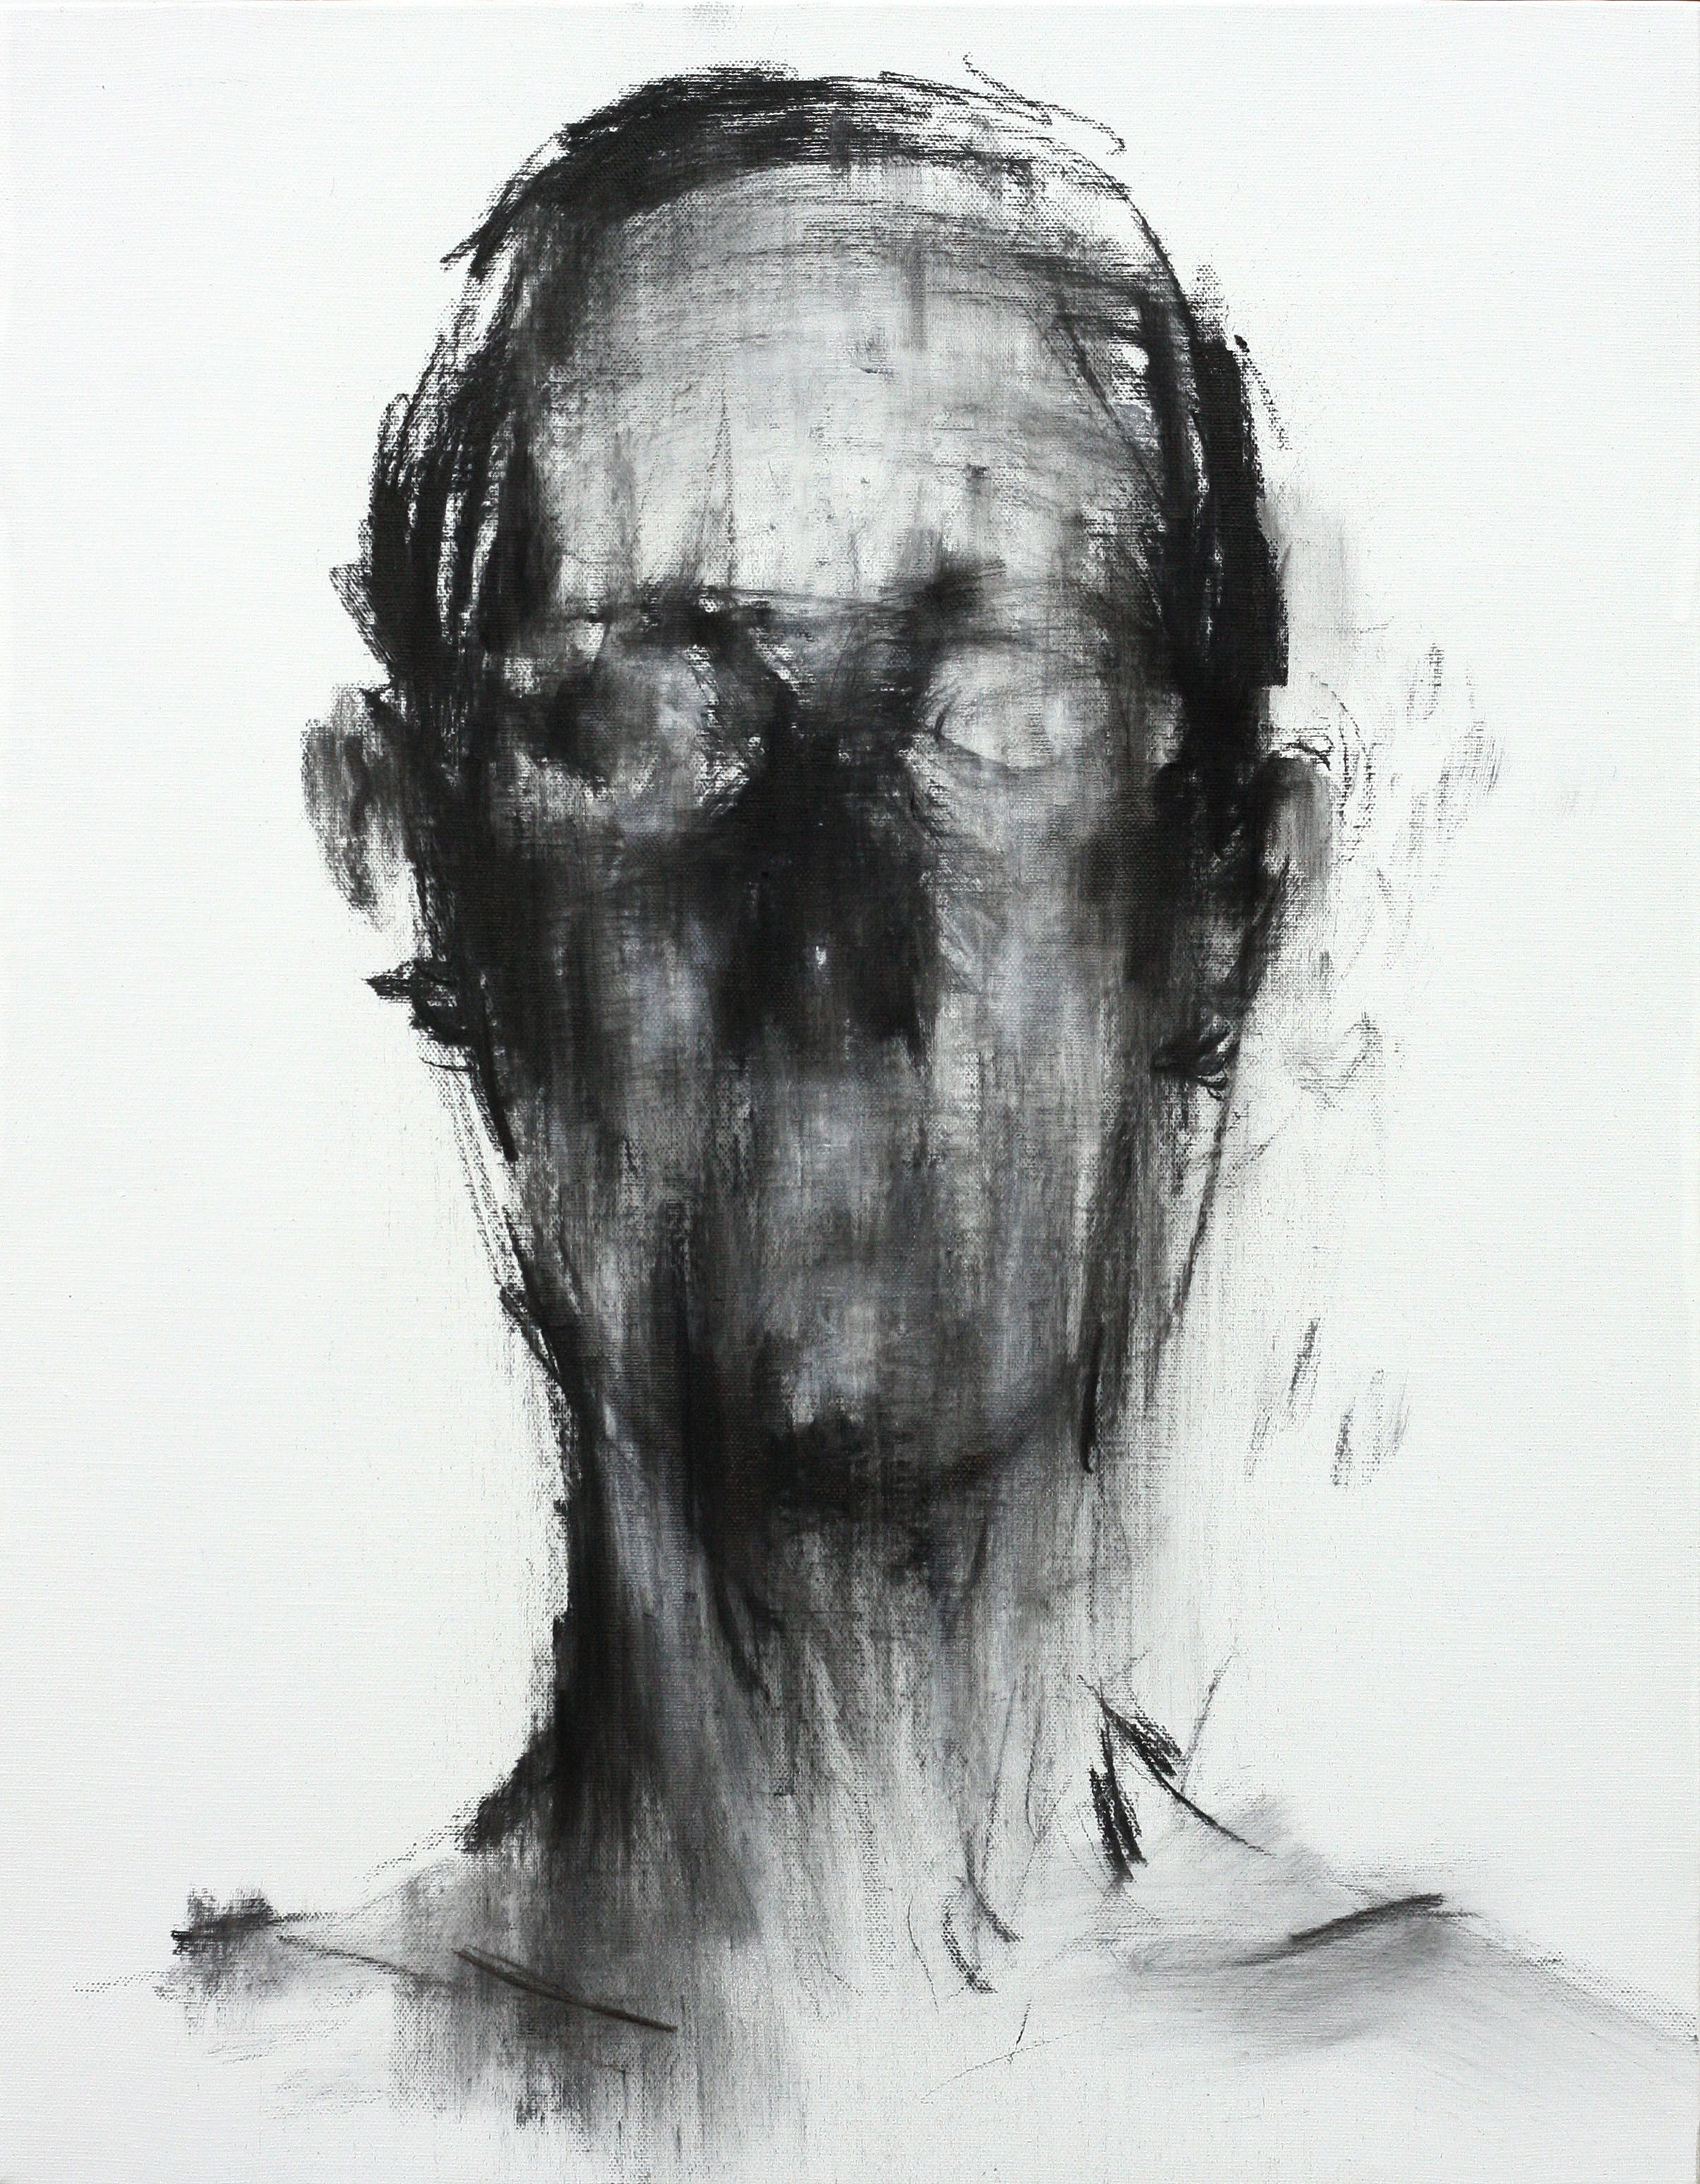 [106] untitled charcoal on canvas 53.2 x 41 cm 2013